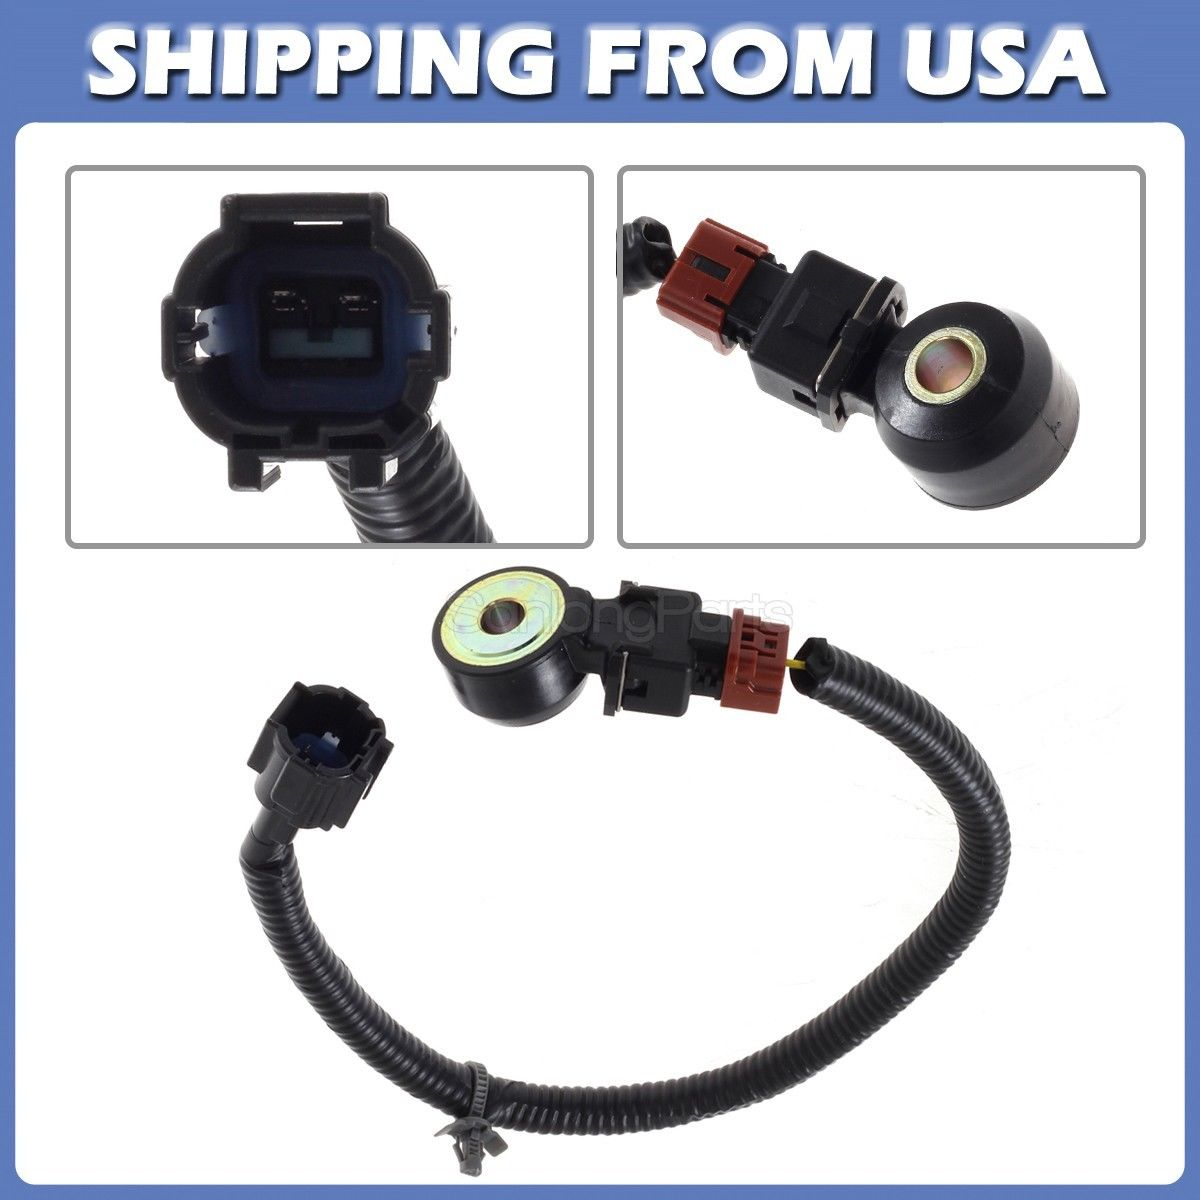 Awesome Knock sensor & Wiring Harness For 95-99 Nissan ... on